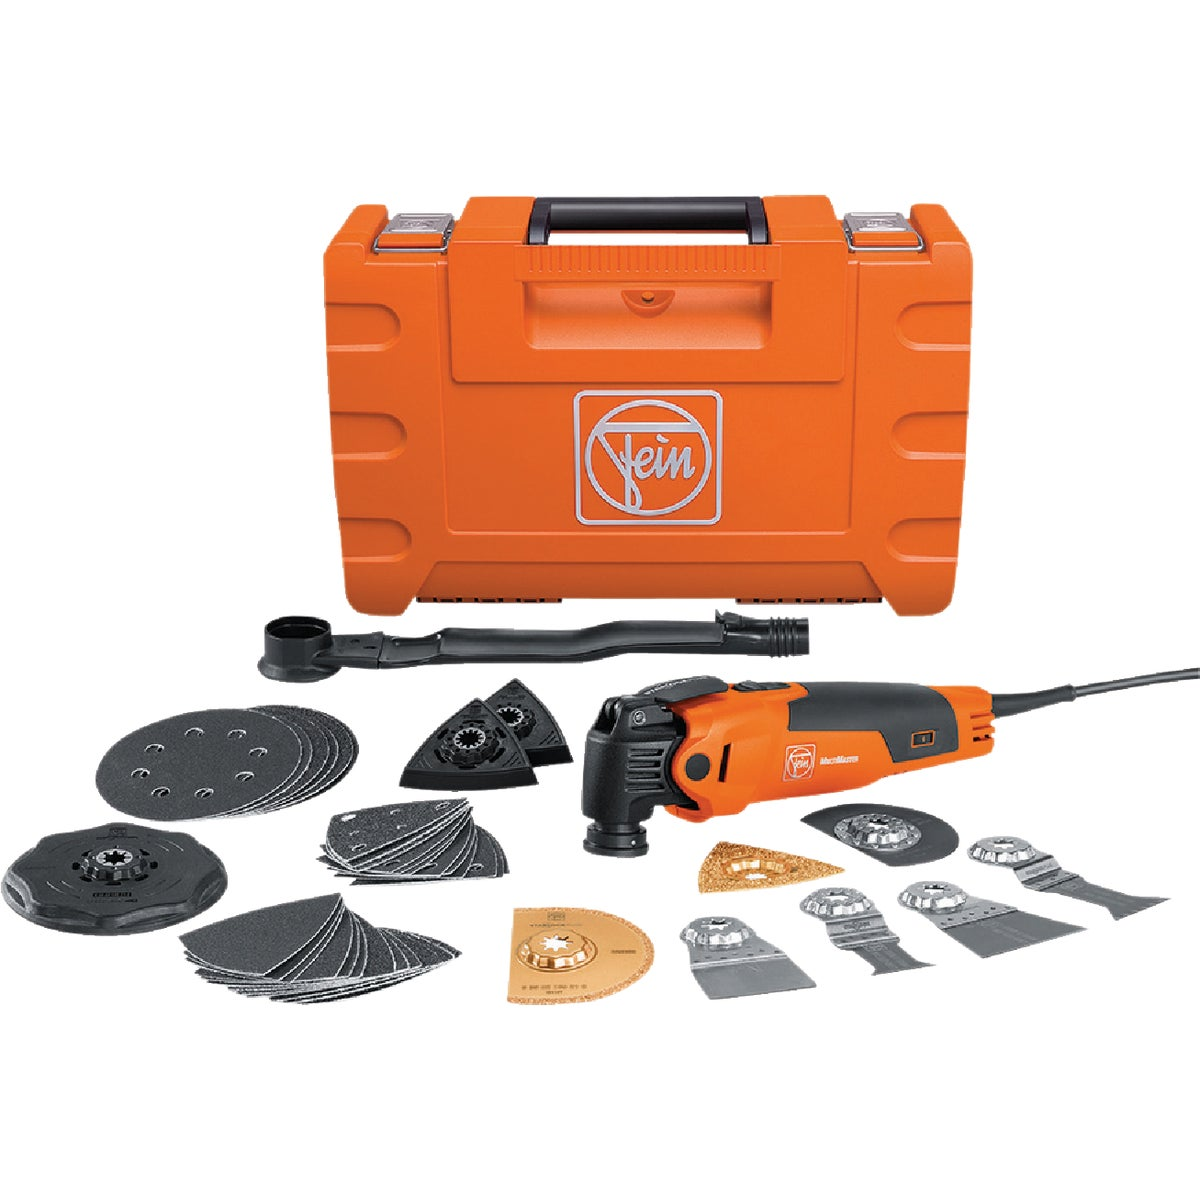 MULTIMASTER TOP KIT - 72293768090 by Fein Power Tools